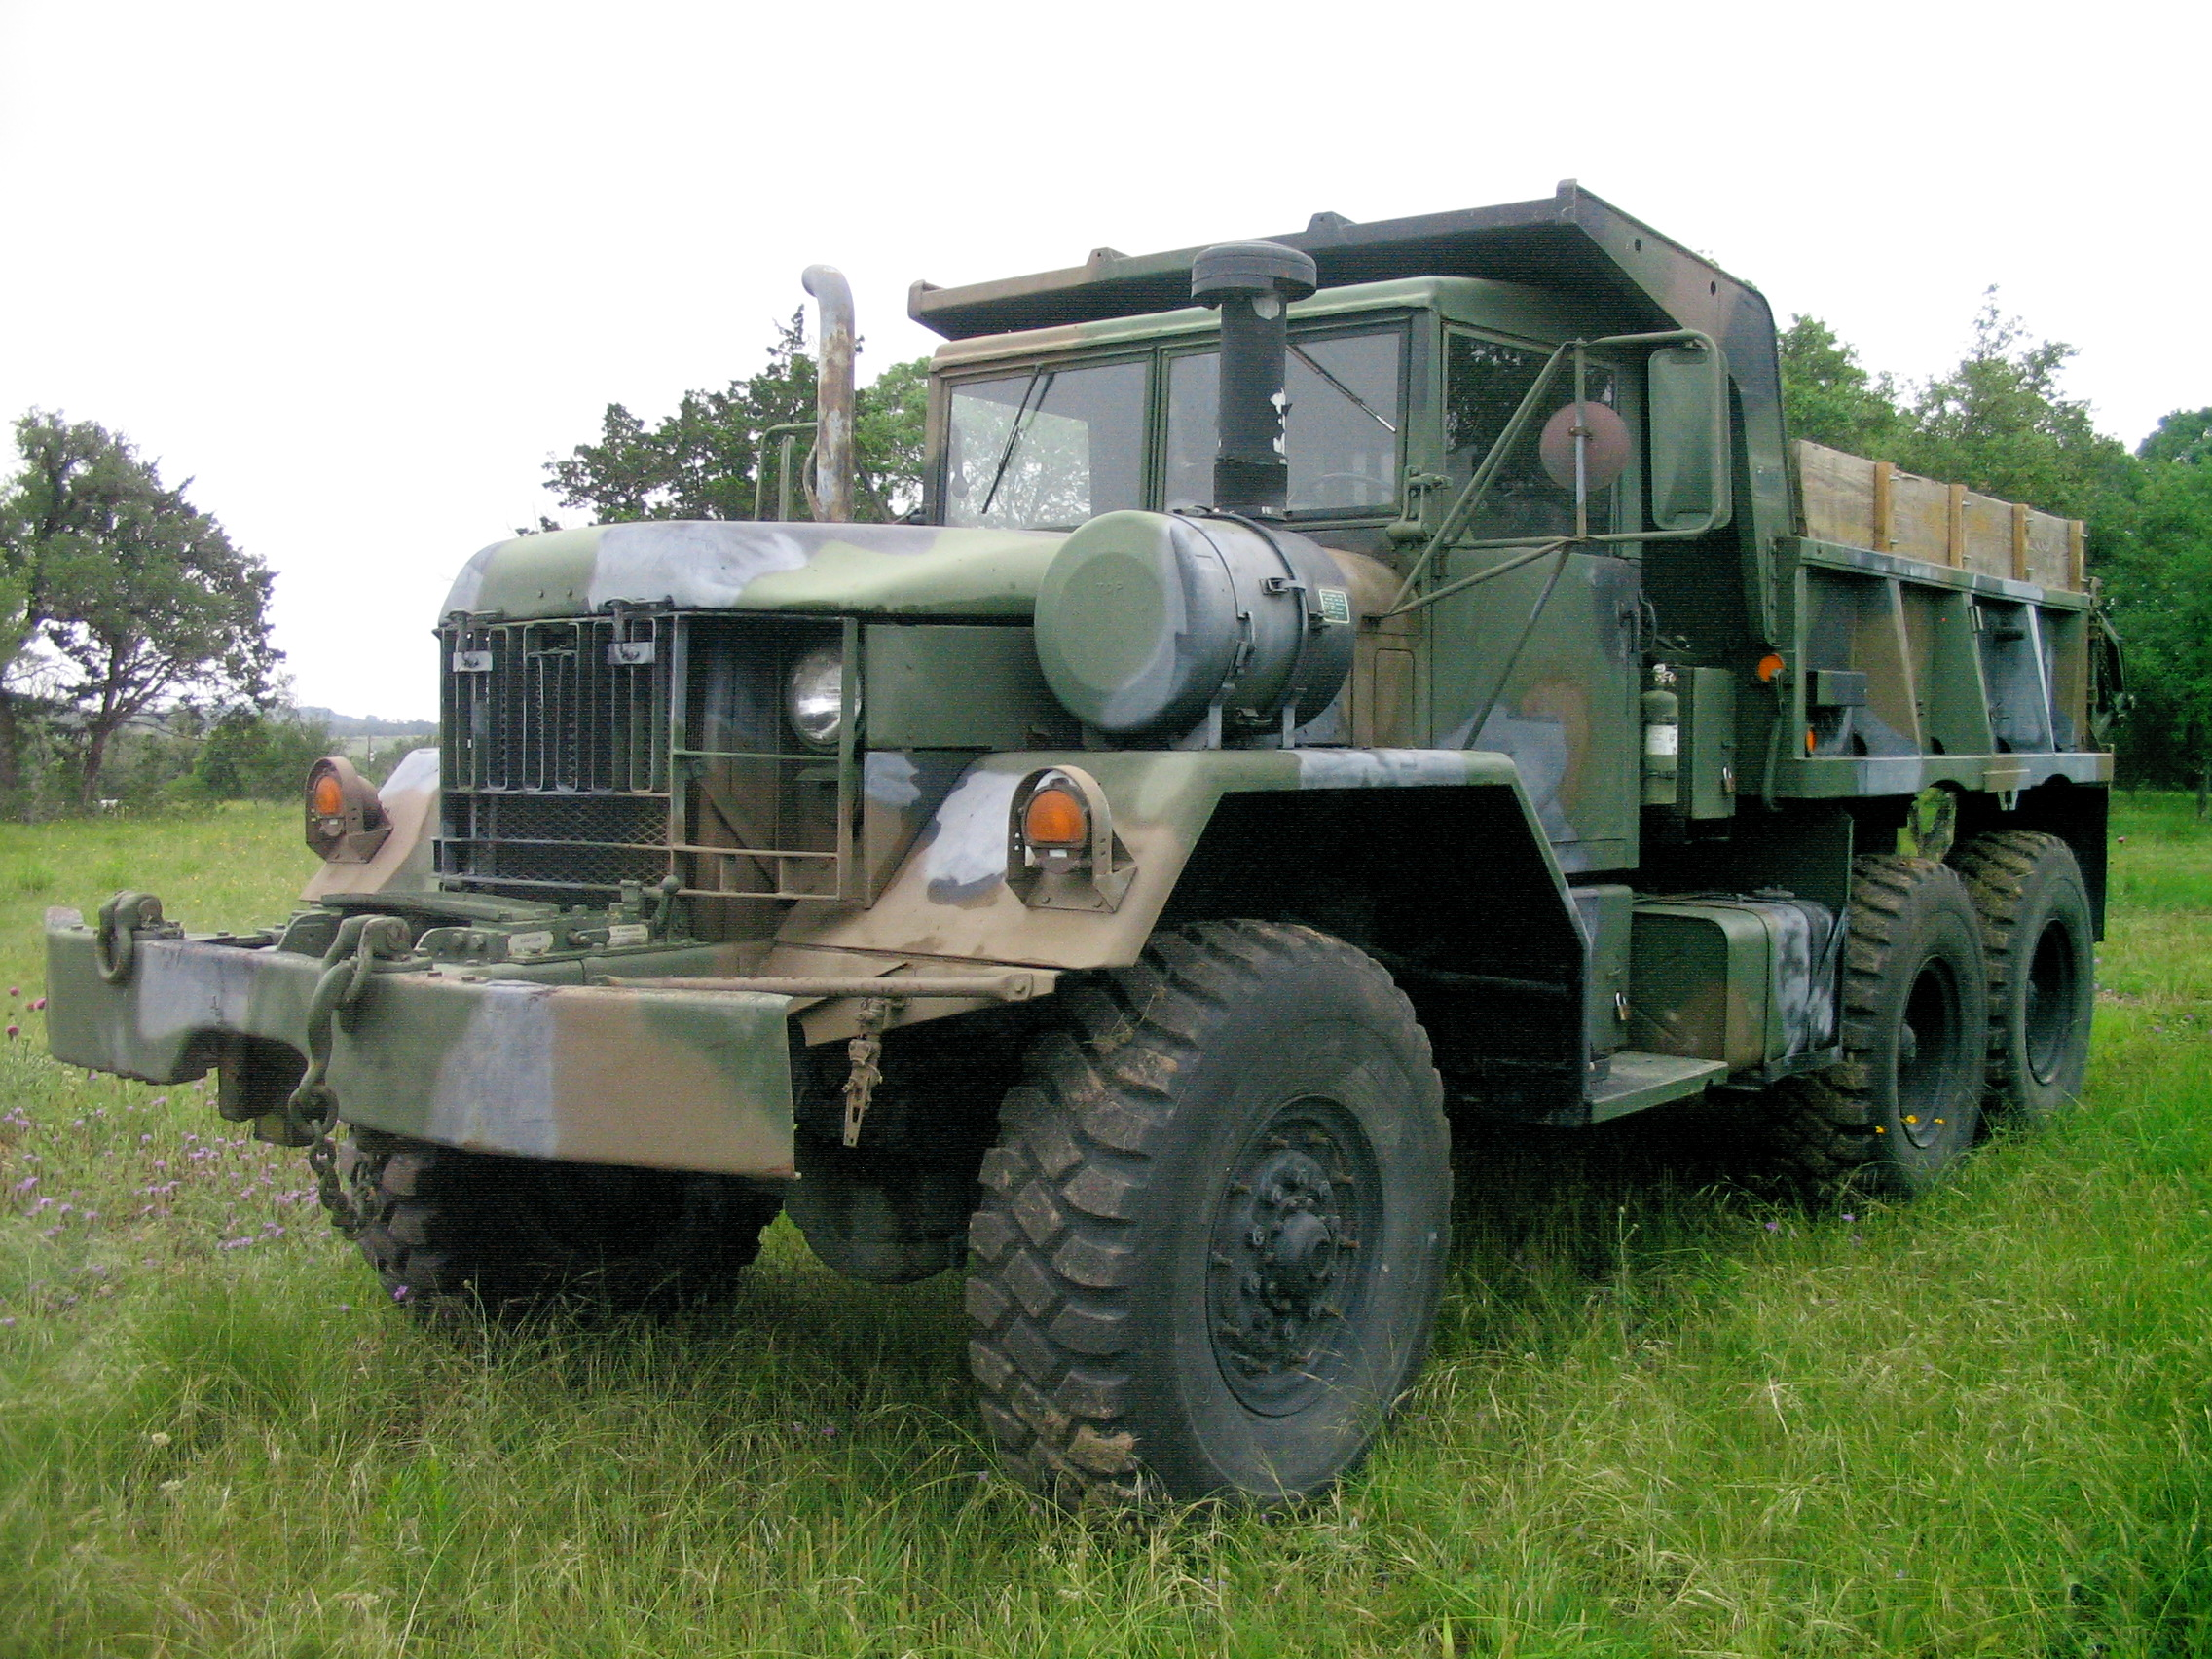 Texas Military Trucks Military Vehicles For Sale Military Trucks